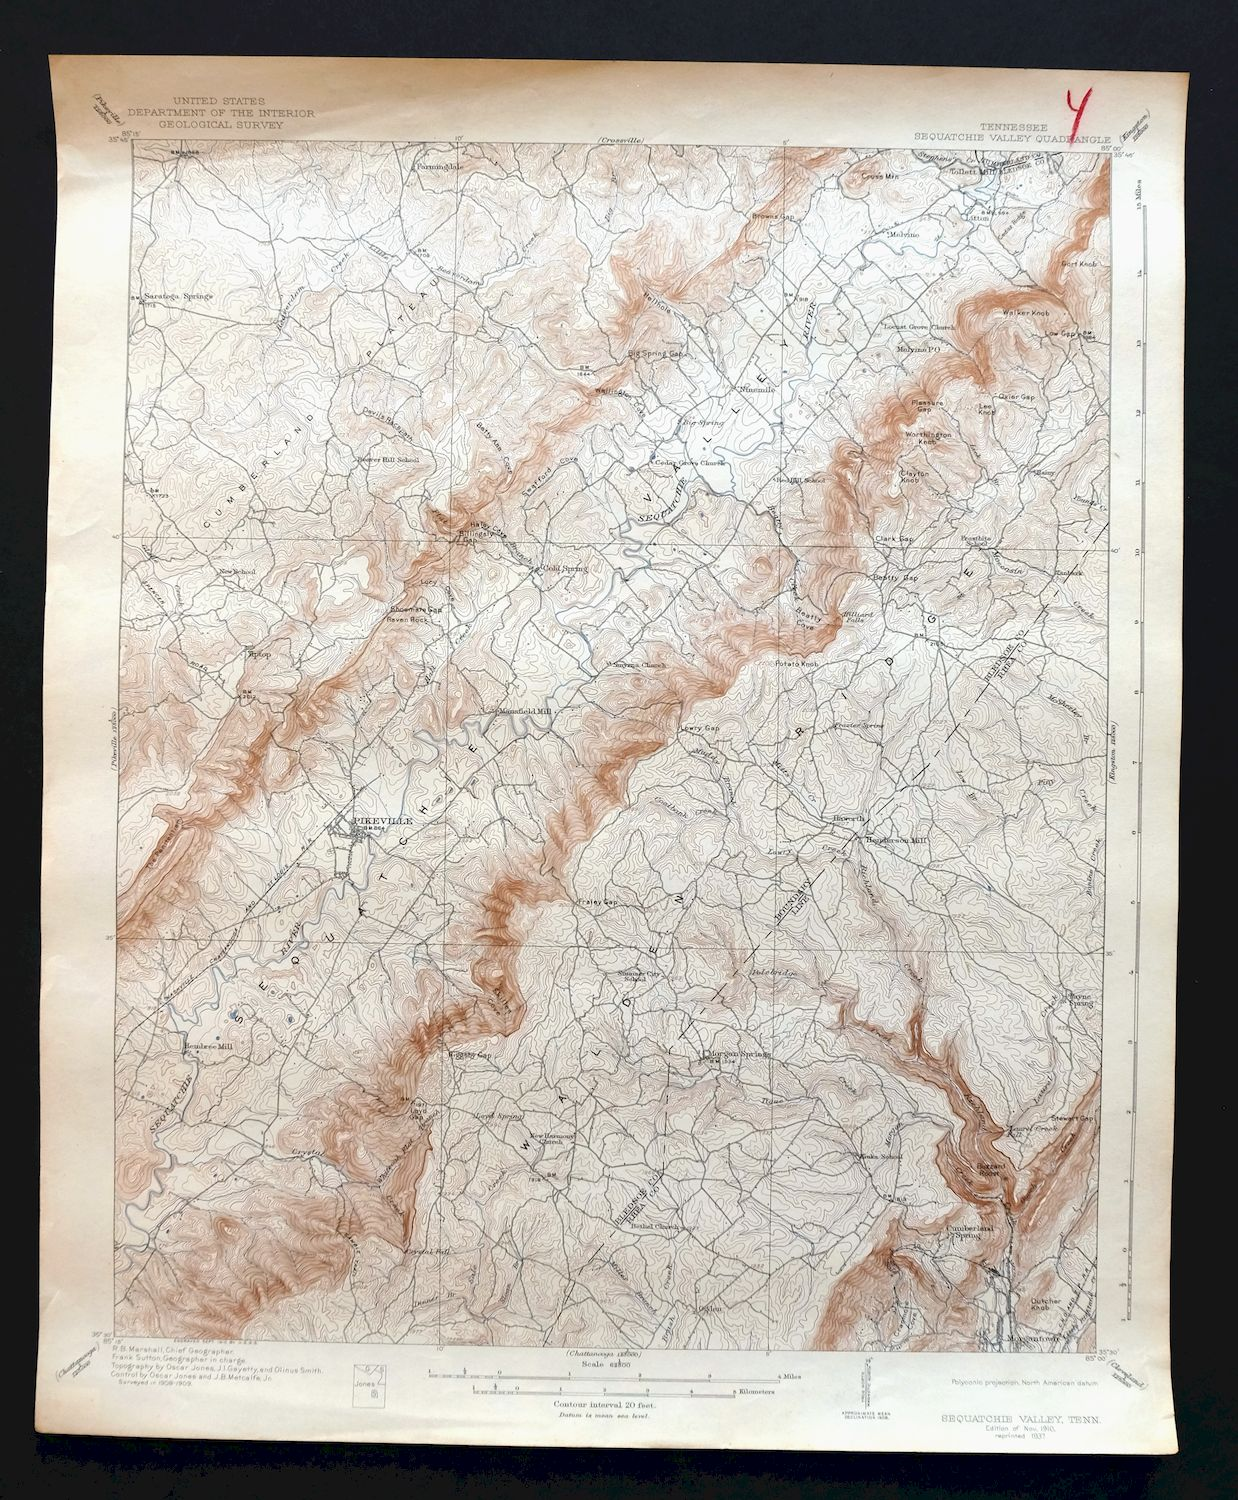 Details about Sequatchie Valley Tennessee Vintage USGS Topographic on vintage topo map, united states topo map, cedar creek topo map, lake sinclair georgia map, oconee national forest topo map, ga power lake sinclair map, lake sinclair history,